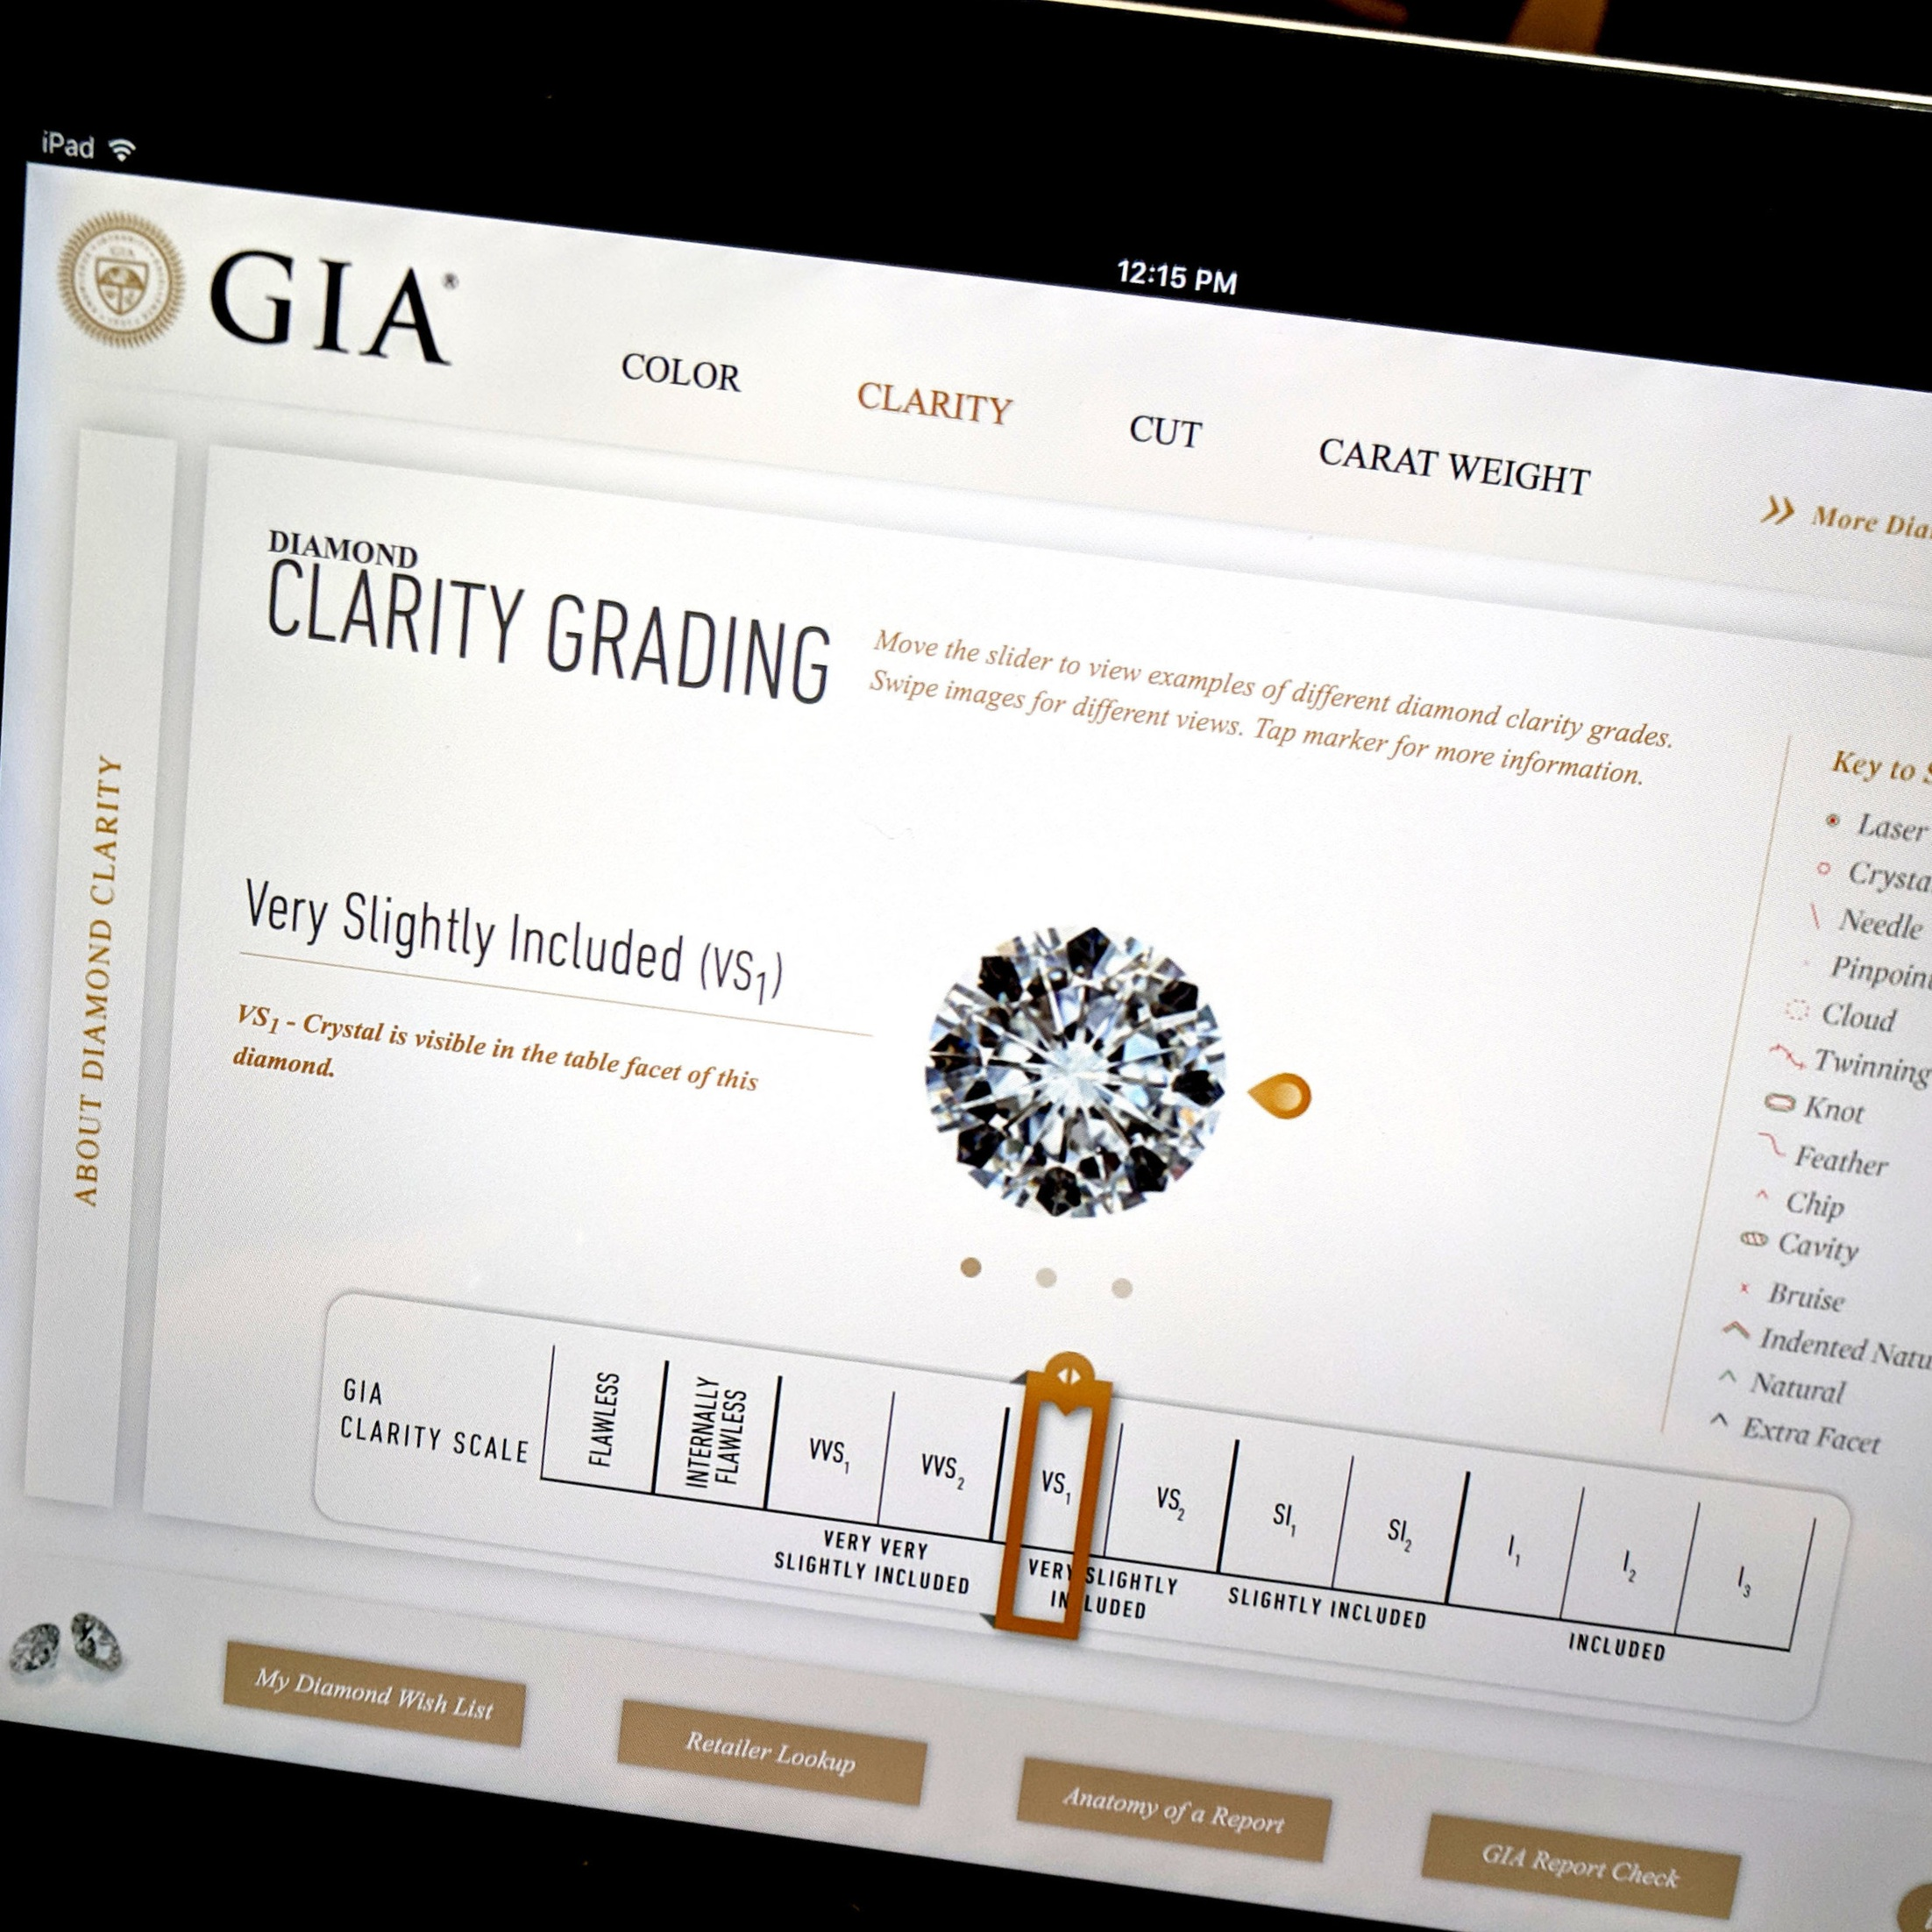 darvier-gia-diamond-clarity-grading-education.jpg